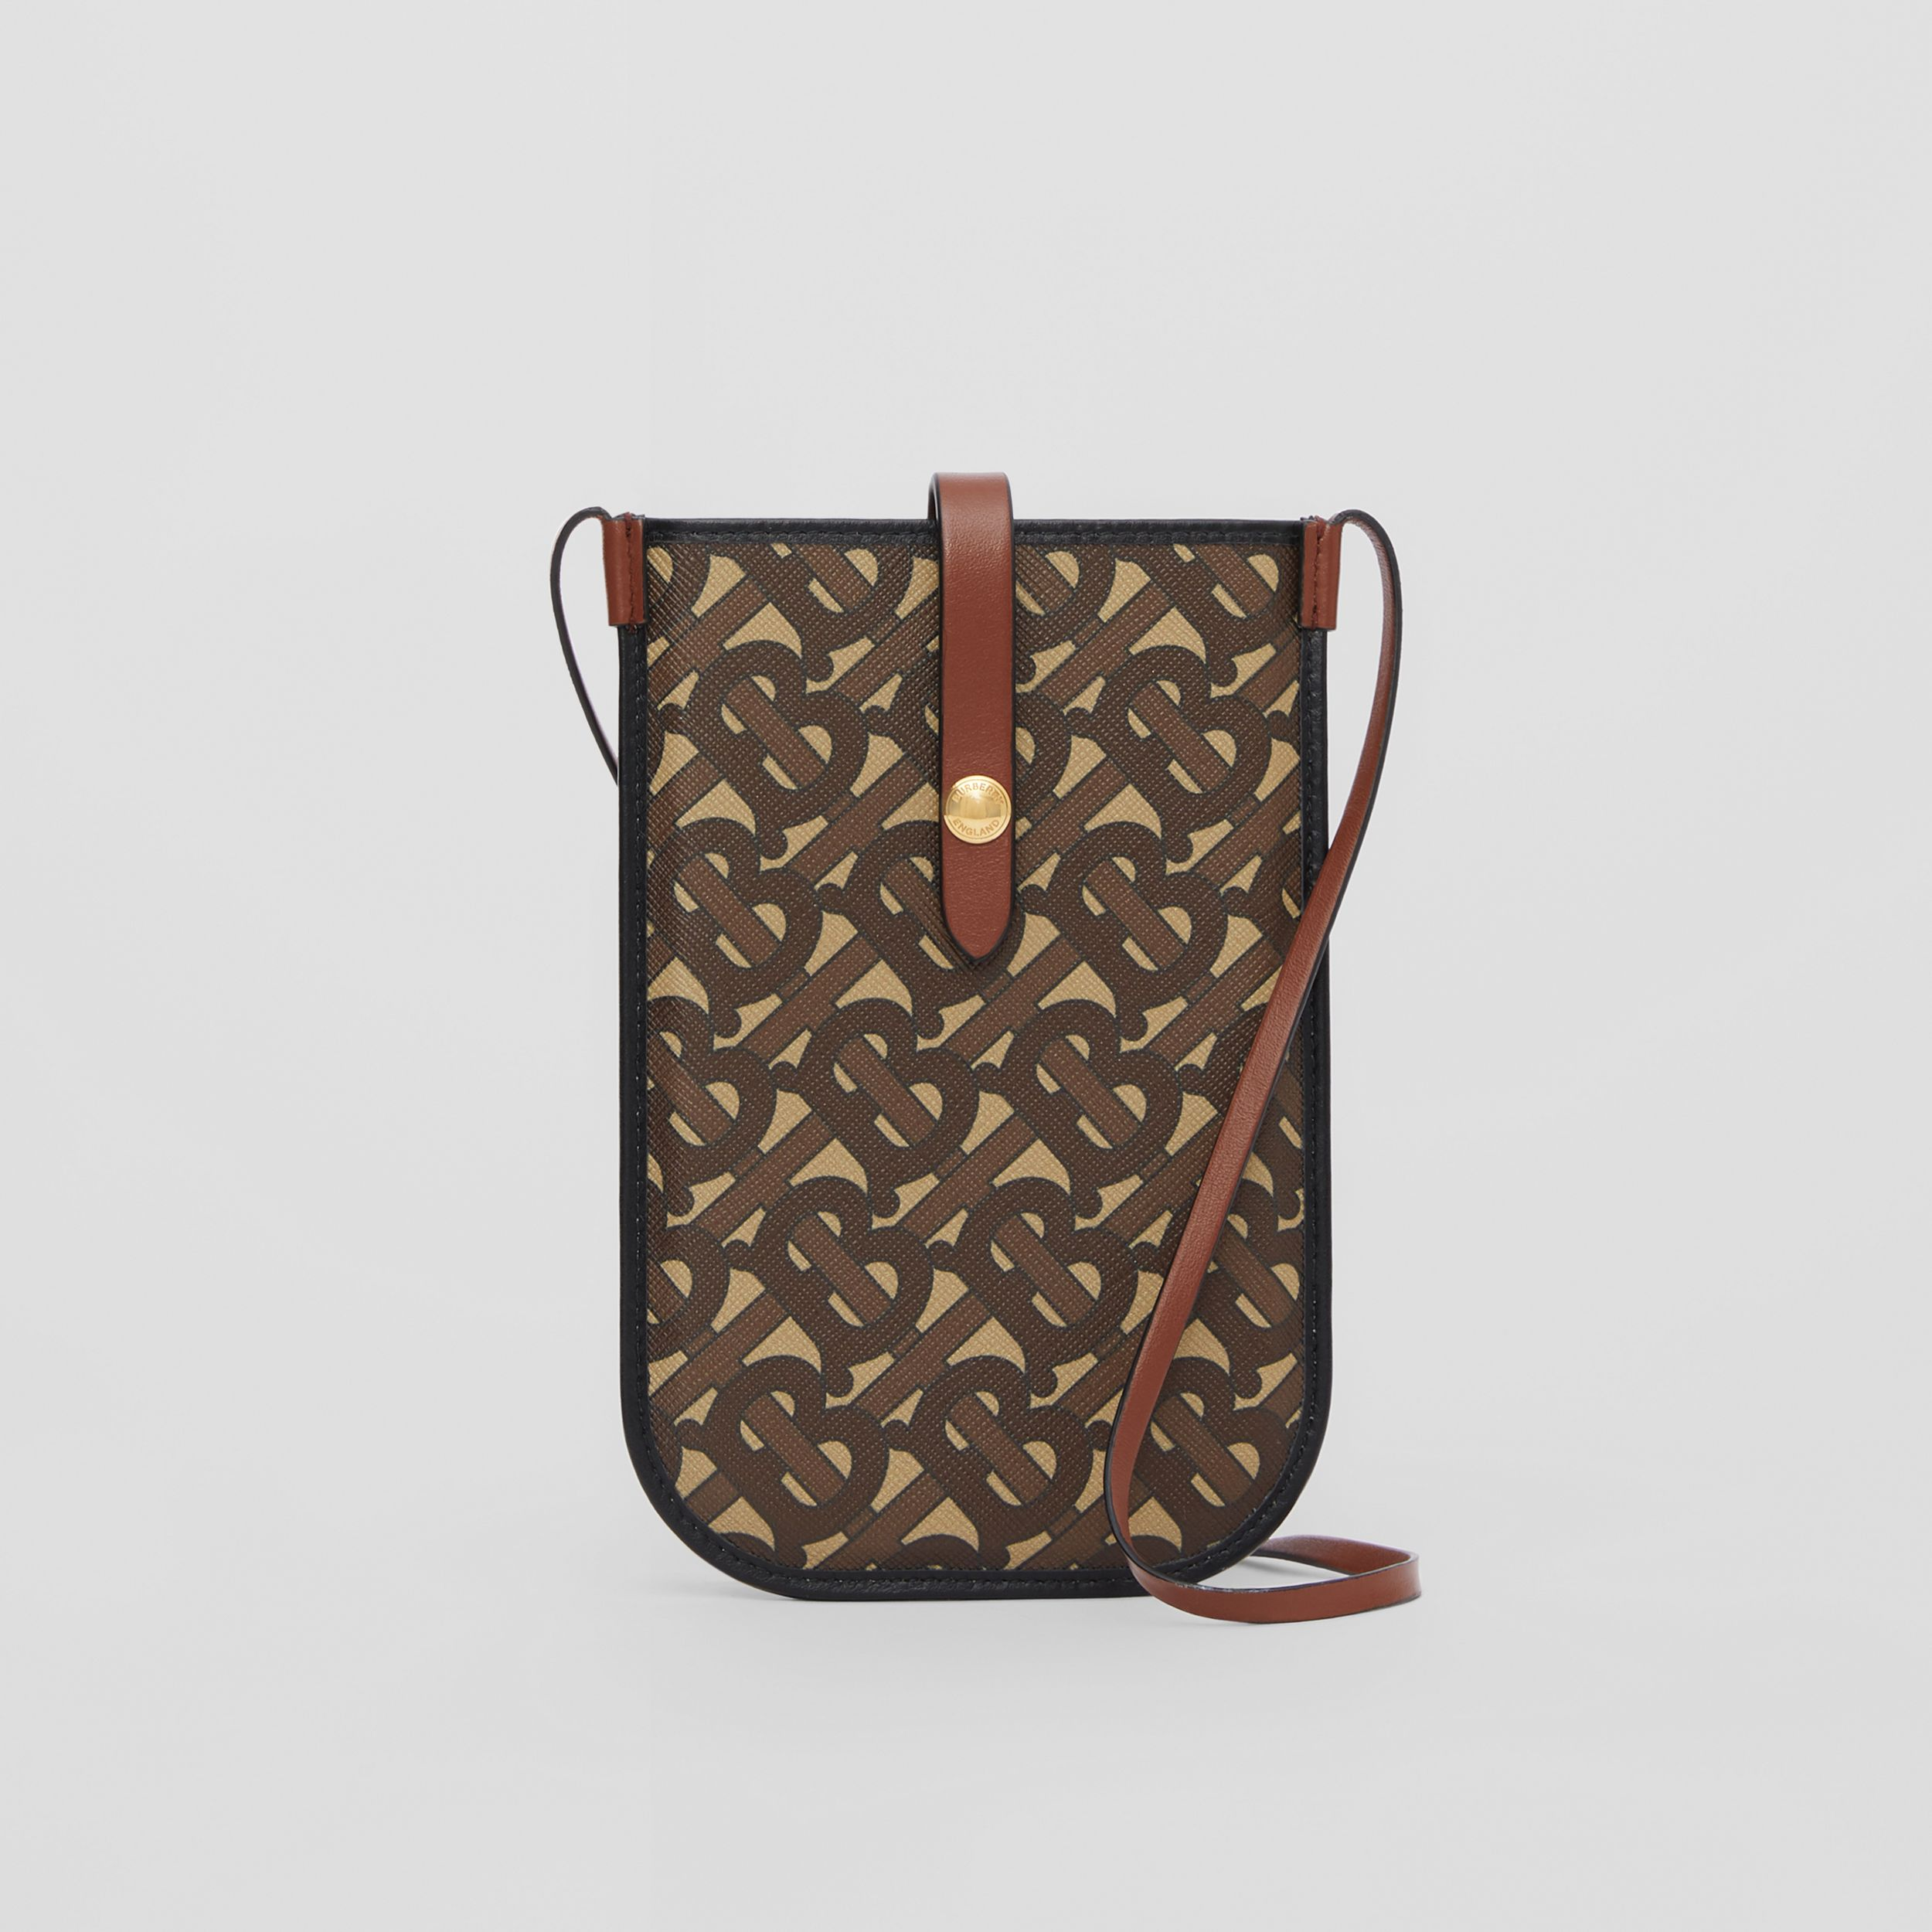 Monogram Print E-canvas Phone Case with Strap in Bridle Brown | Burberry Canada - 1